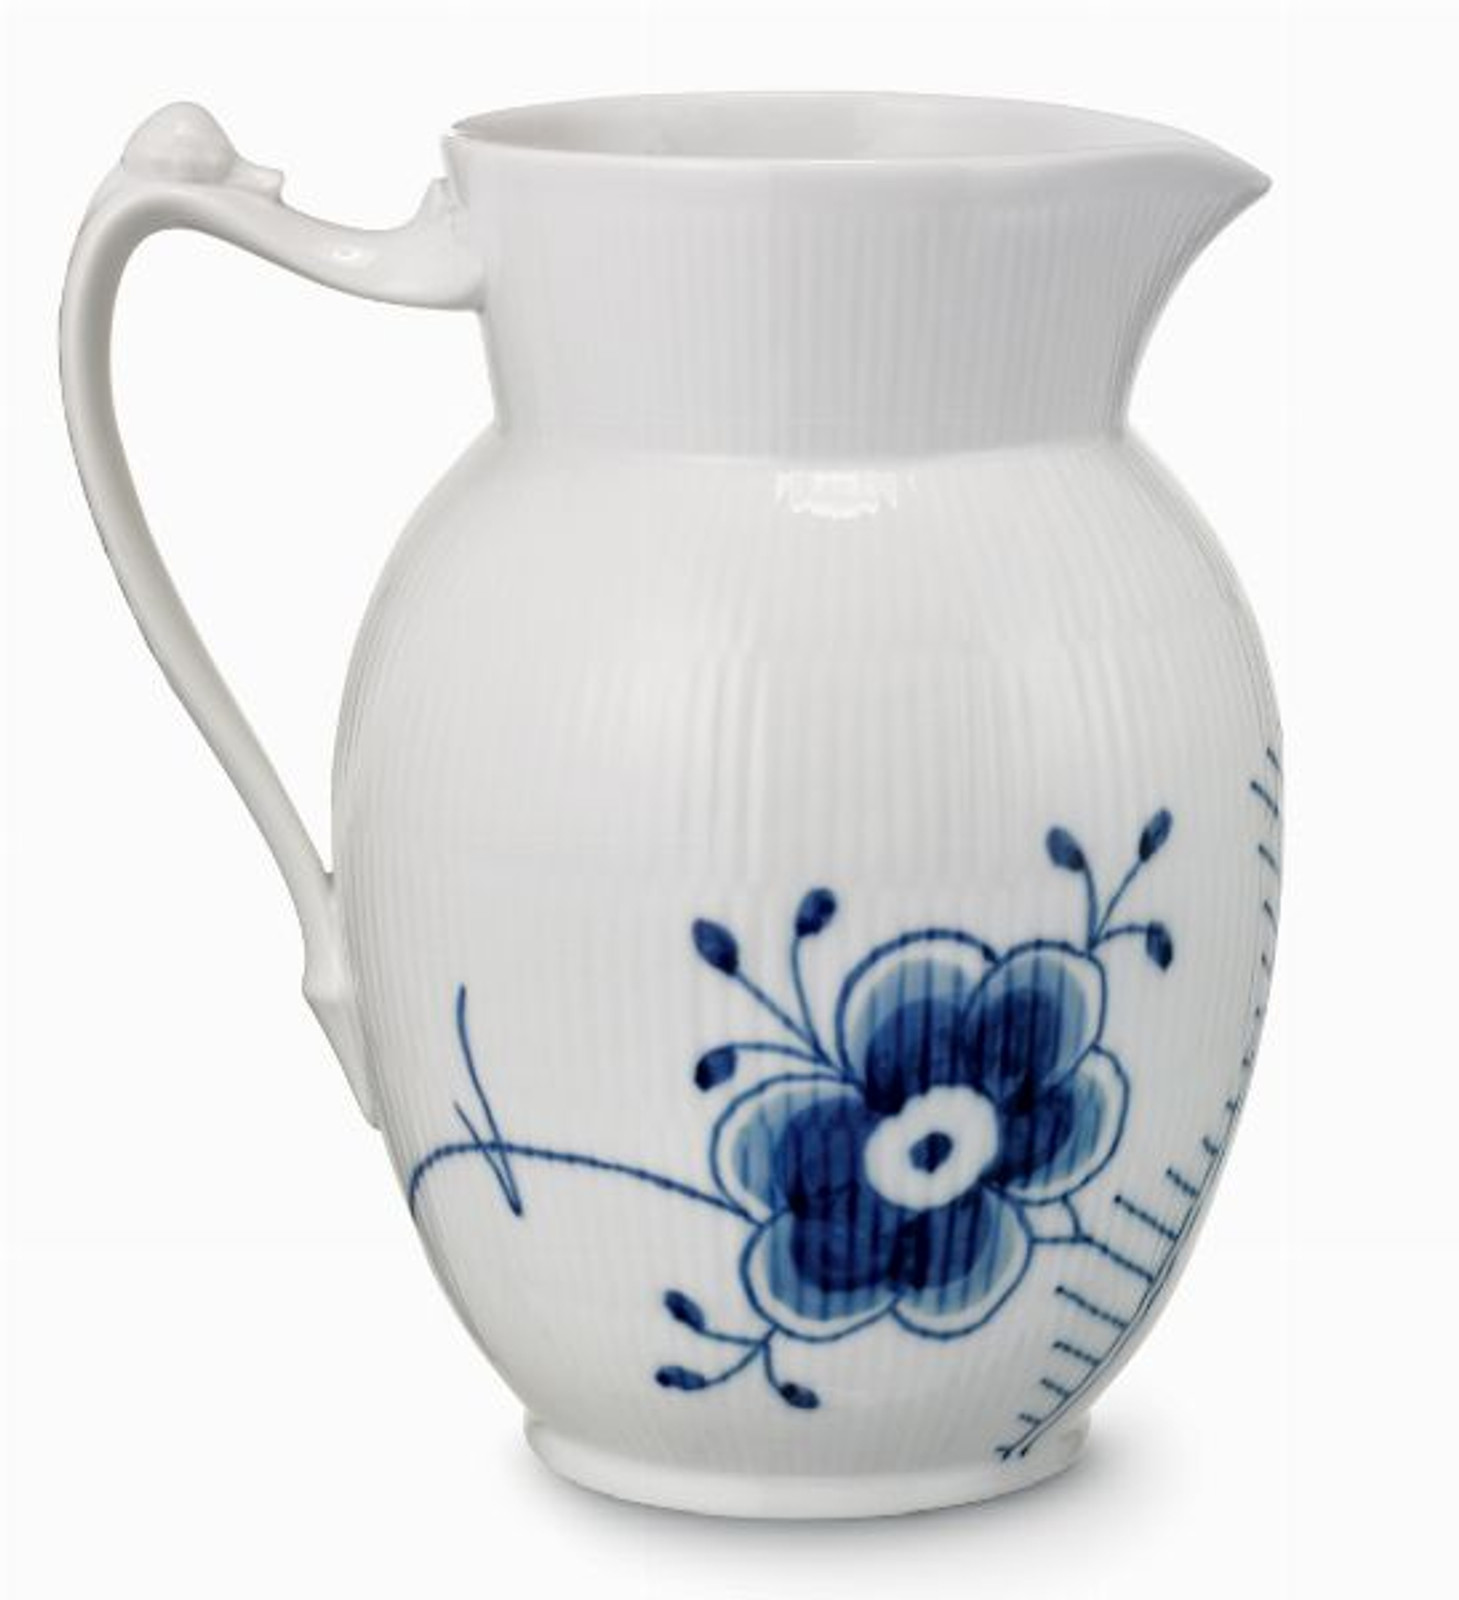 Royal Copenhagen Blue Fluted Mega Creamer Jug, 13 oz.